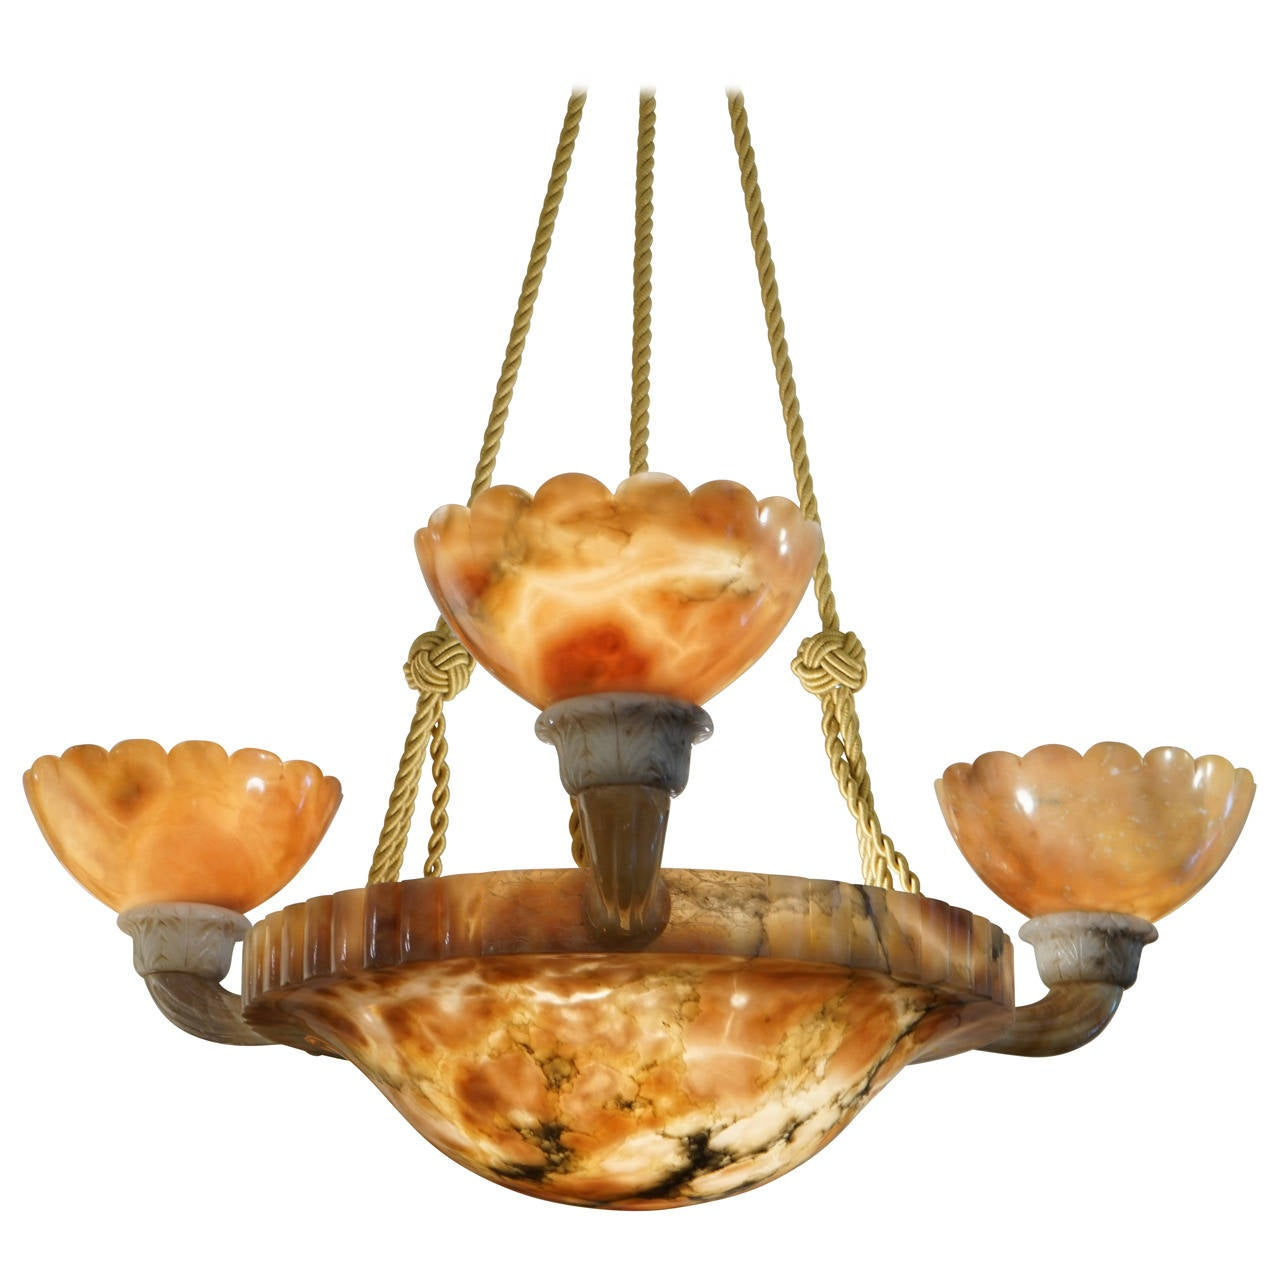 Amber art deco alabaster chandelier circa 1929 for sale at 1stdibs amber art deco alabaster chandelier circa 1929 for sale arubaitofo Images